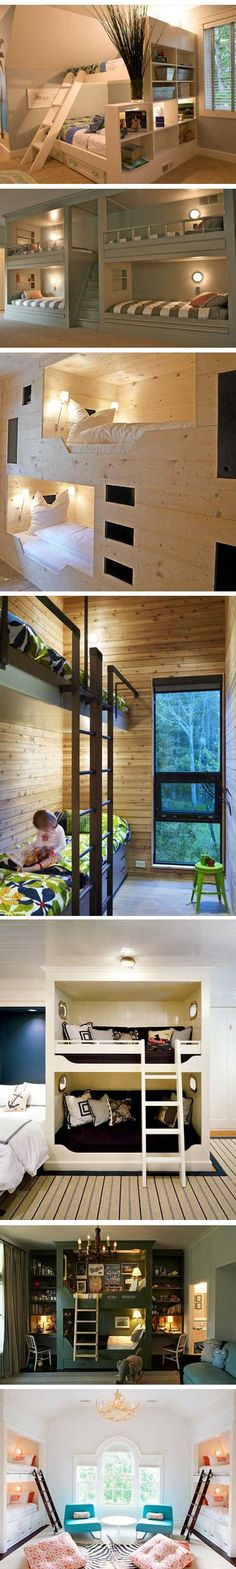 cool-bunk-beds-pillow-rooms